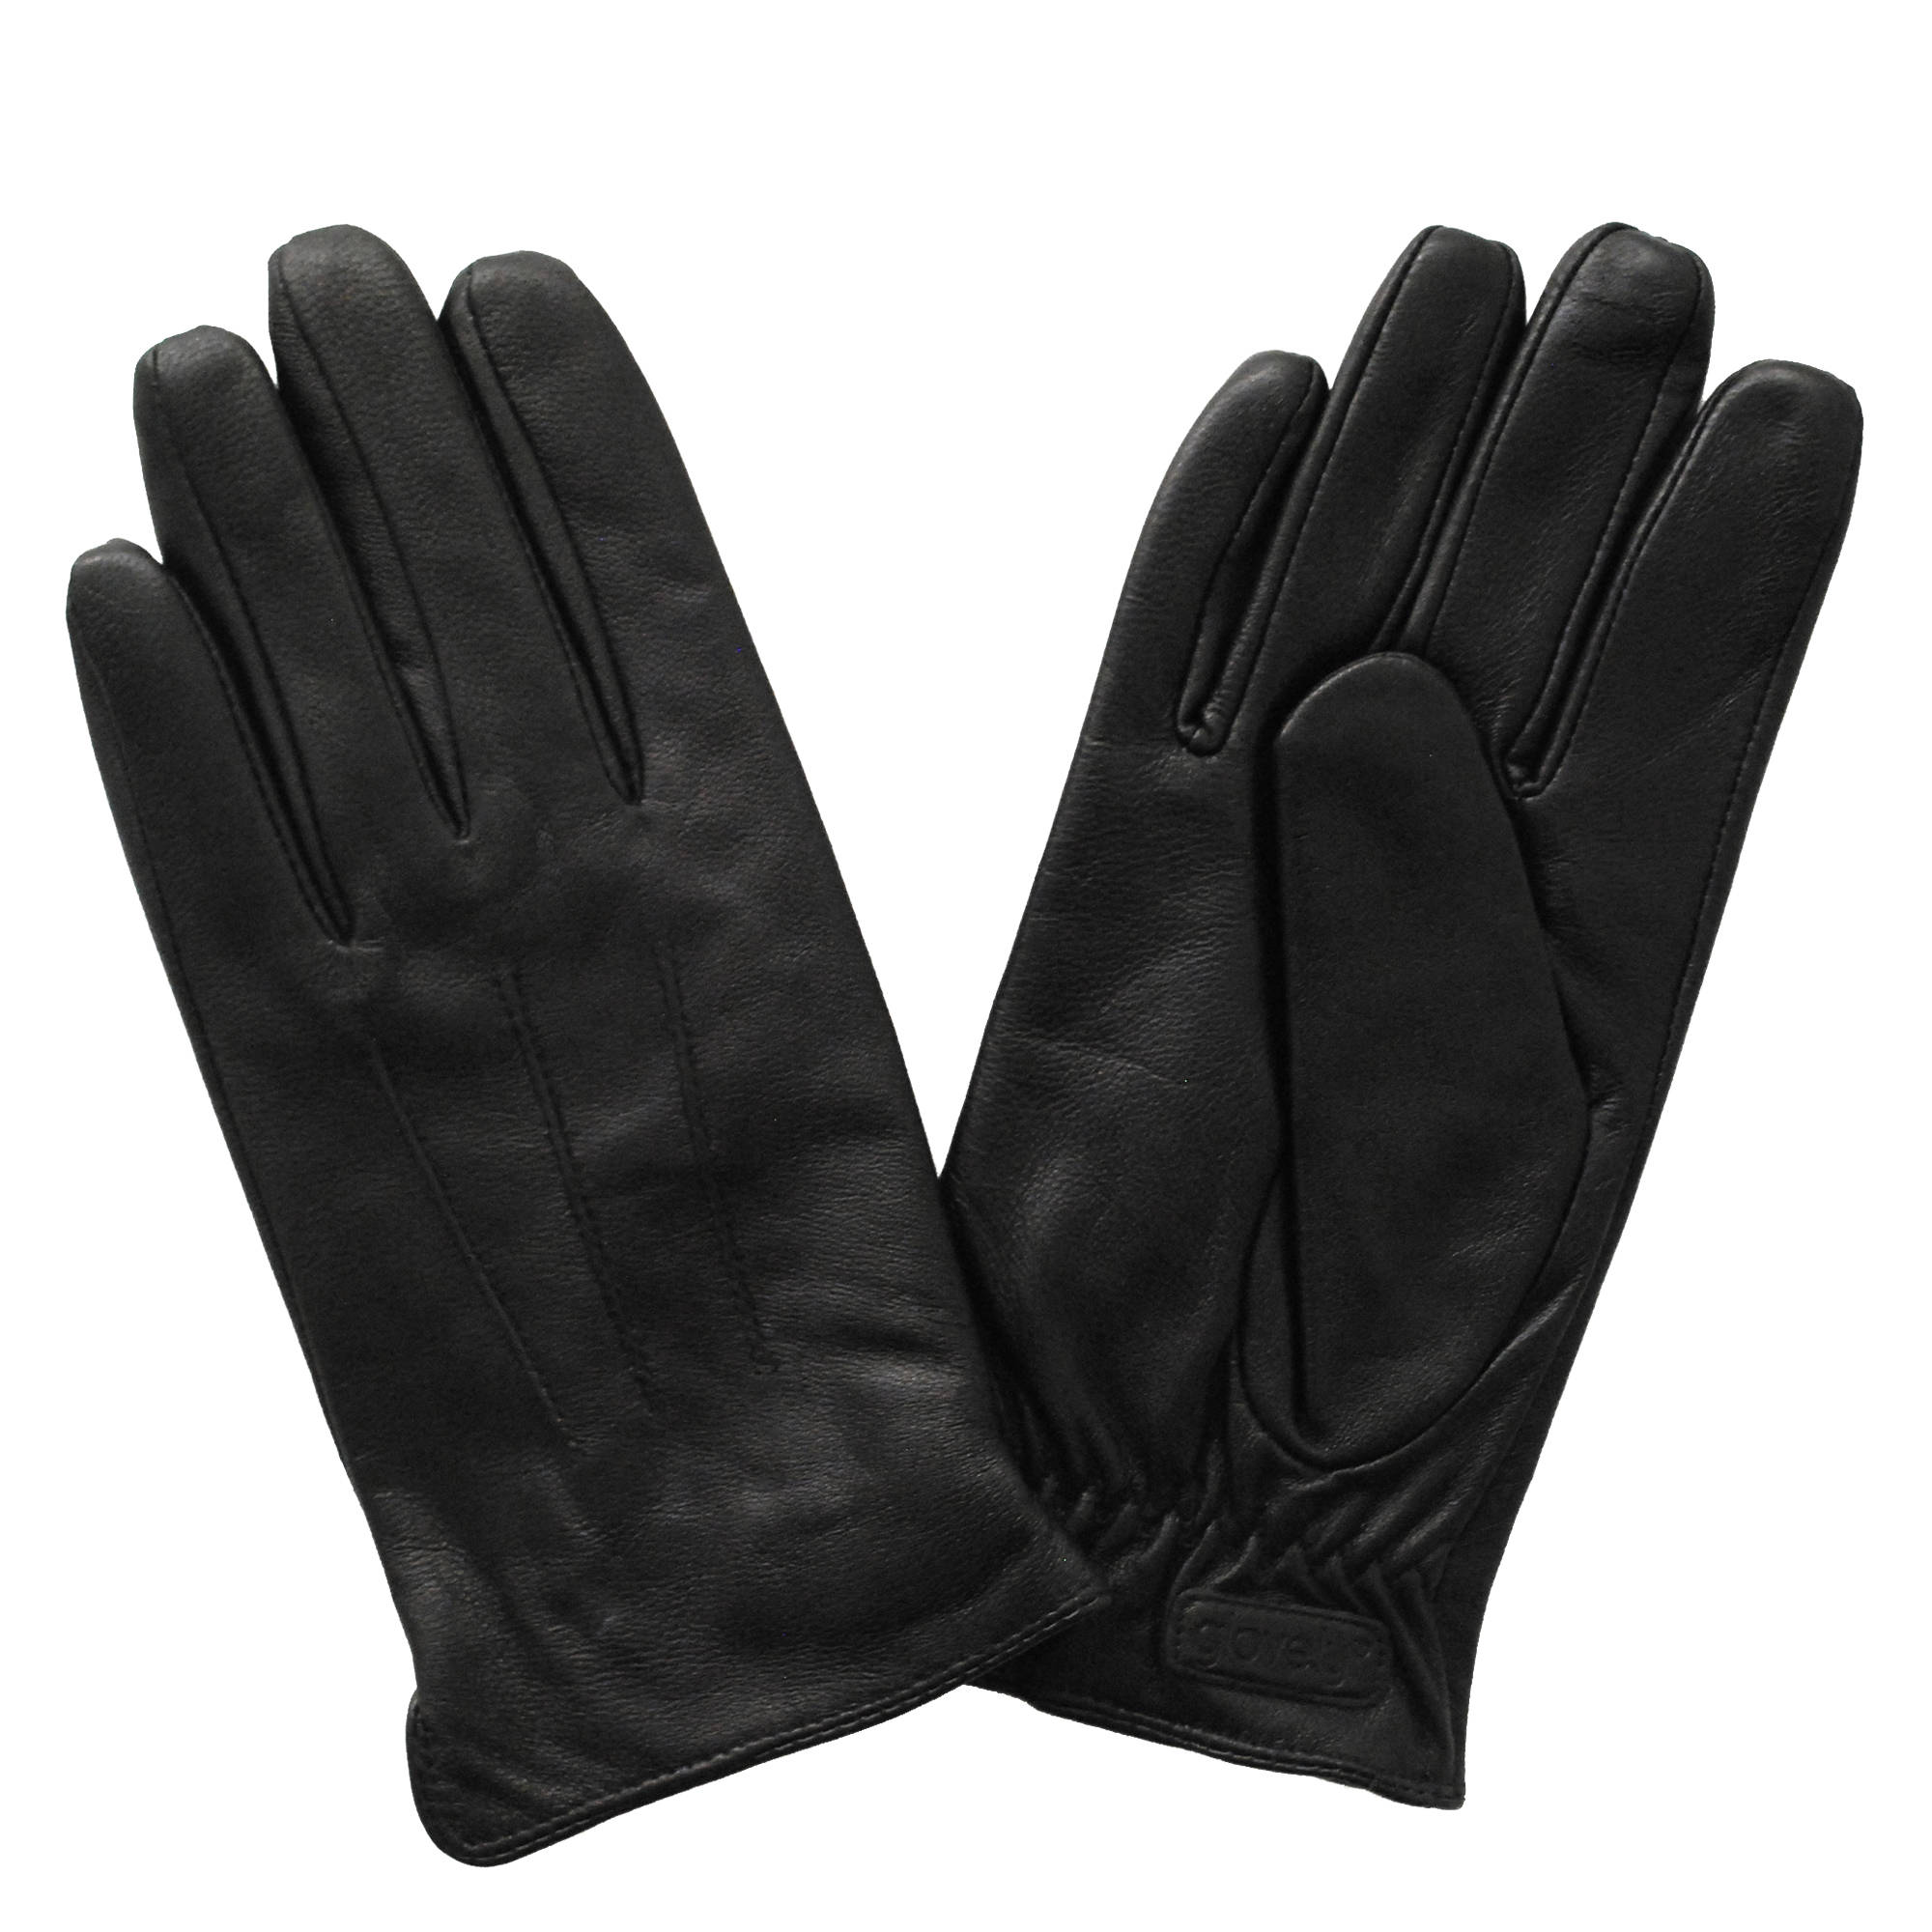 Black Leather Gloves For Men Glove.ly Men's Leather